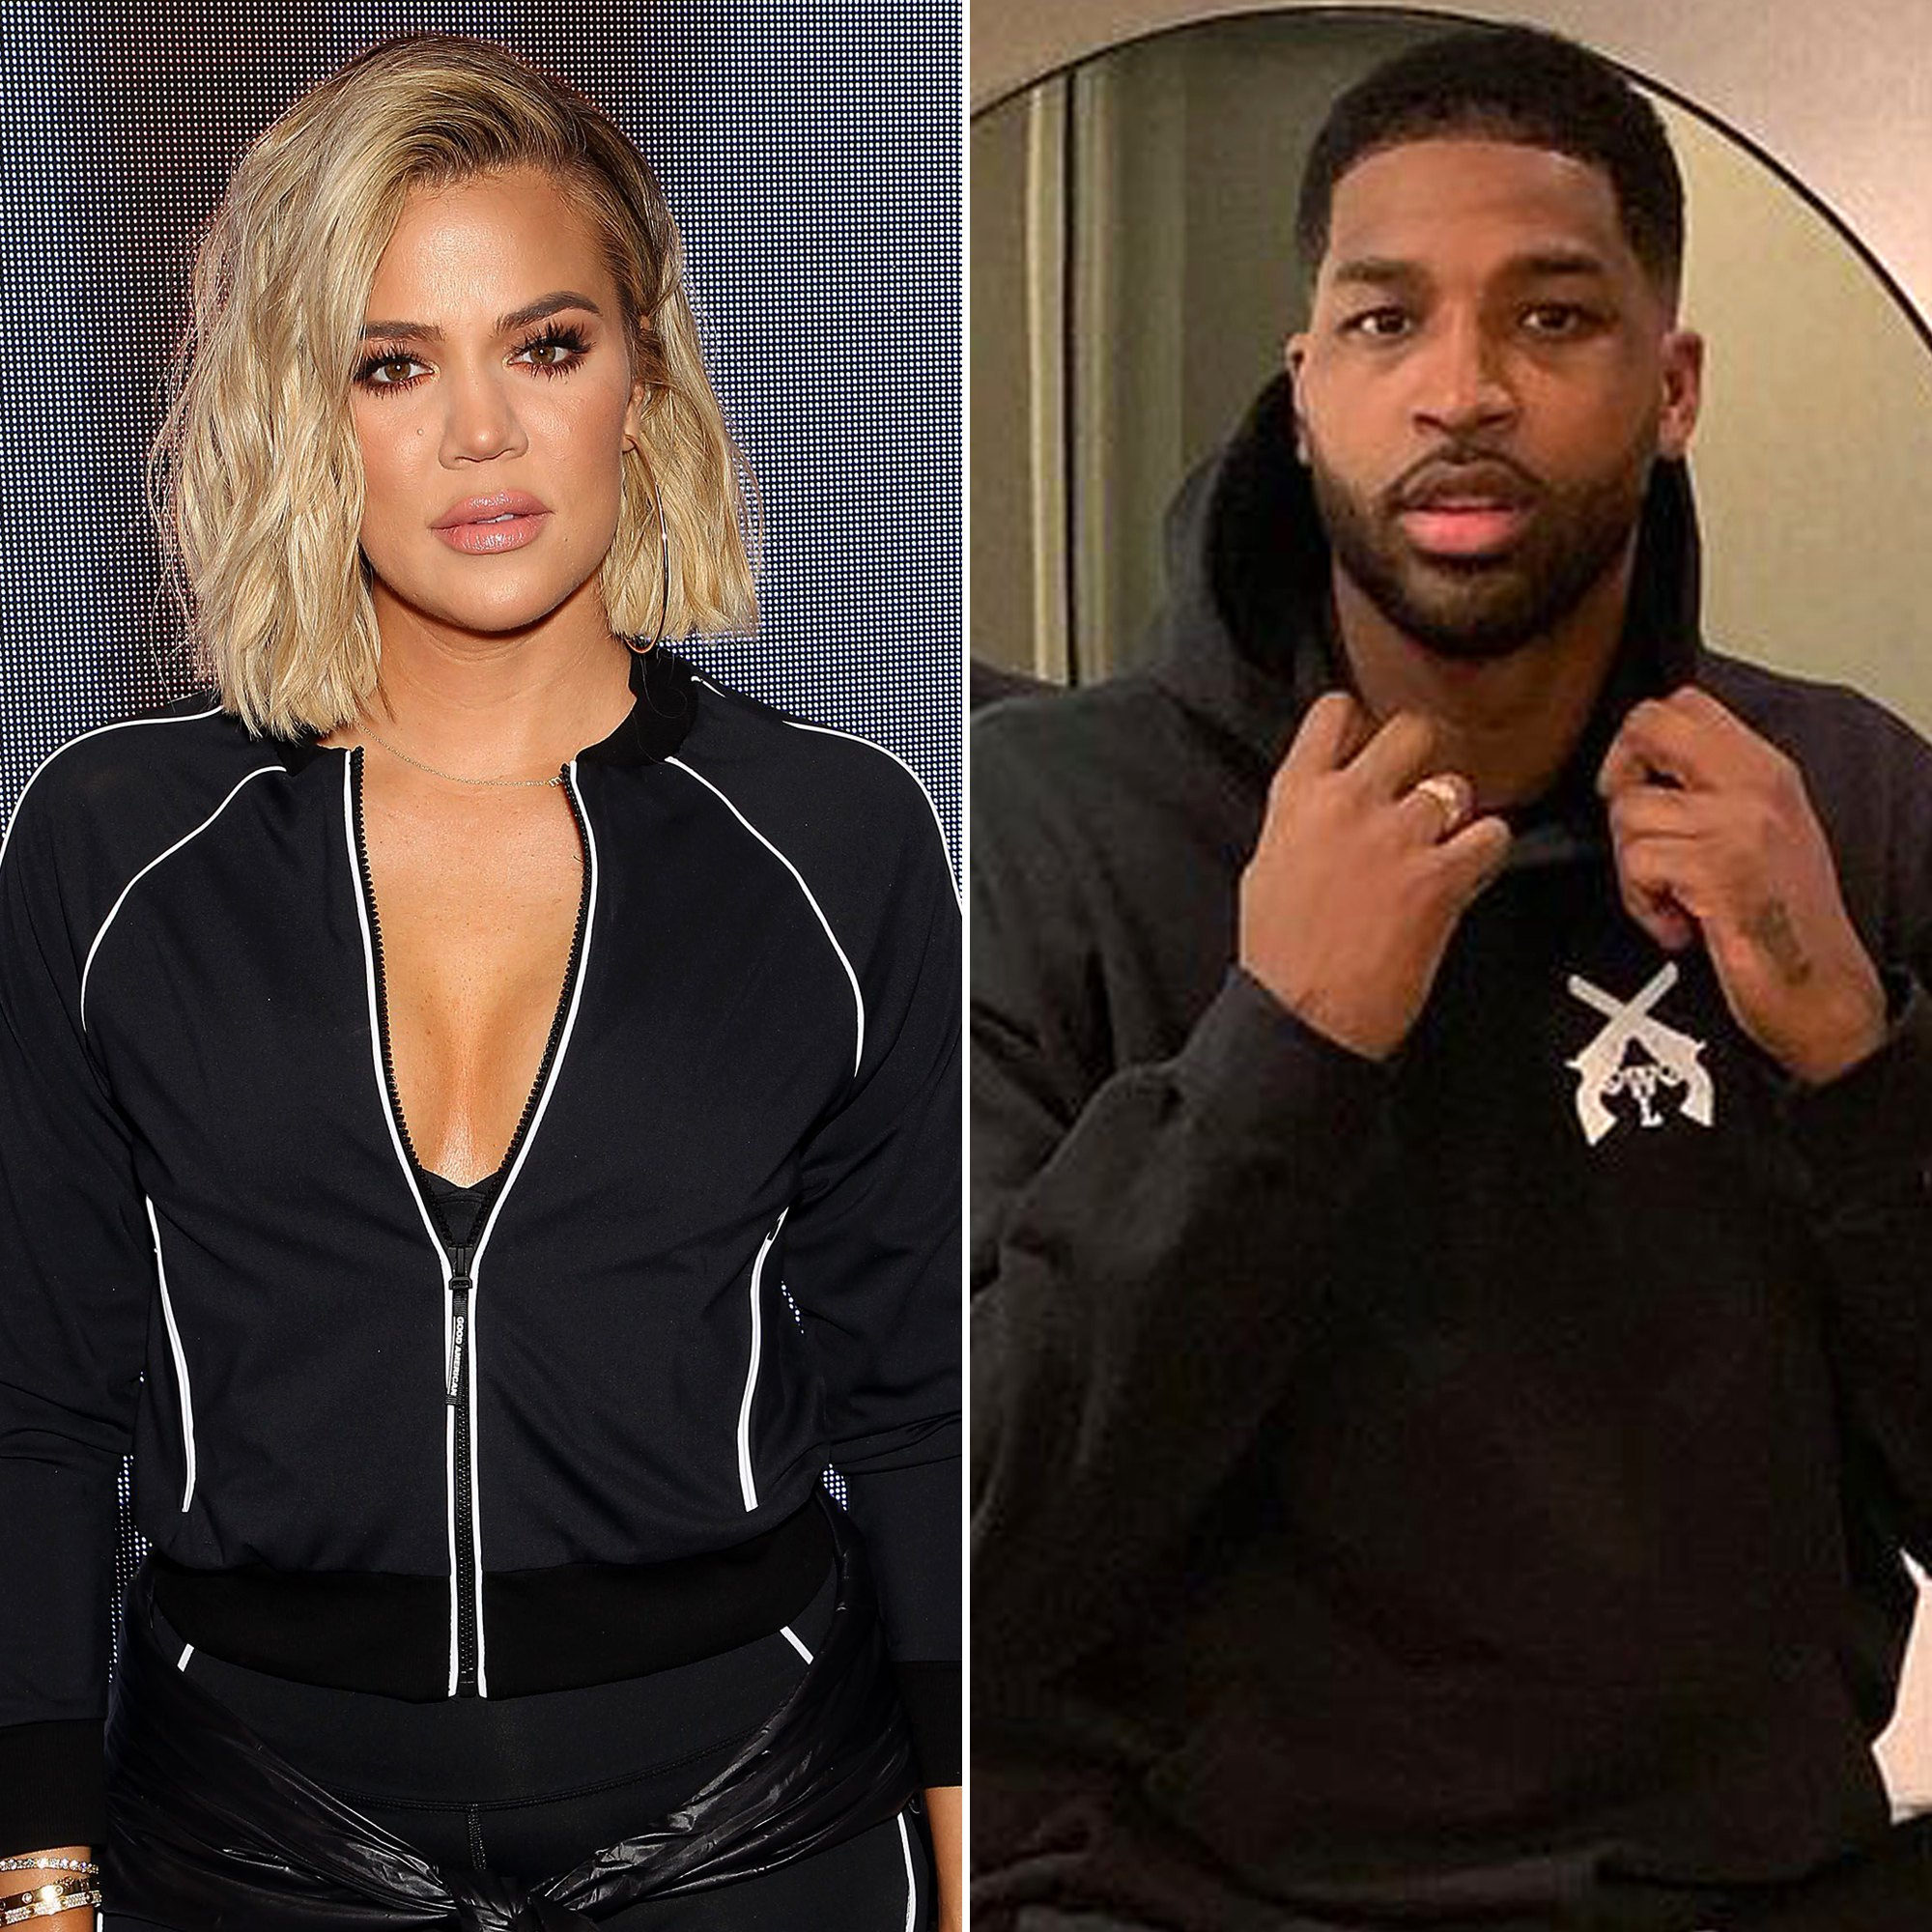 """""""kuwtk-khloe-kardashian-finally-convinced-she-and-tristan-thompson-werent-meant-to-be-together-source-says"""""""